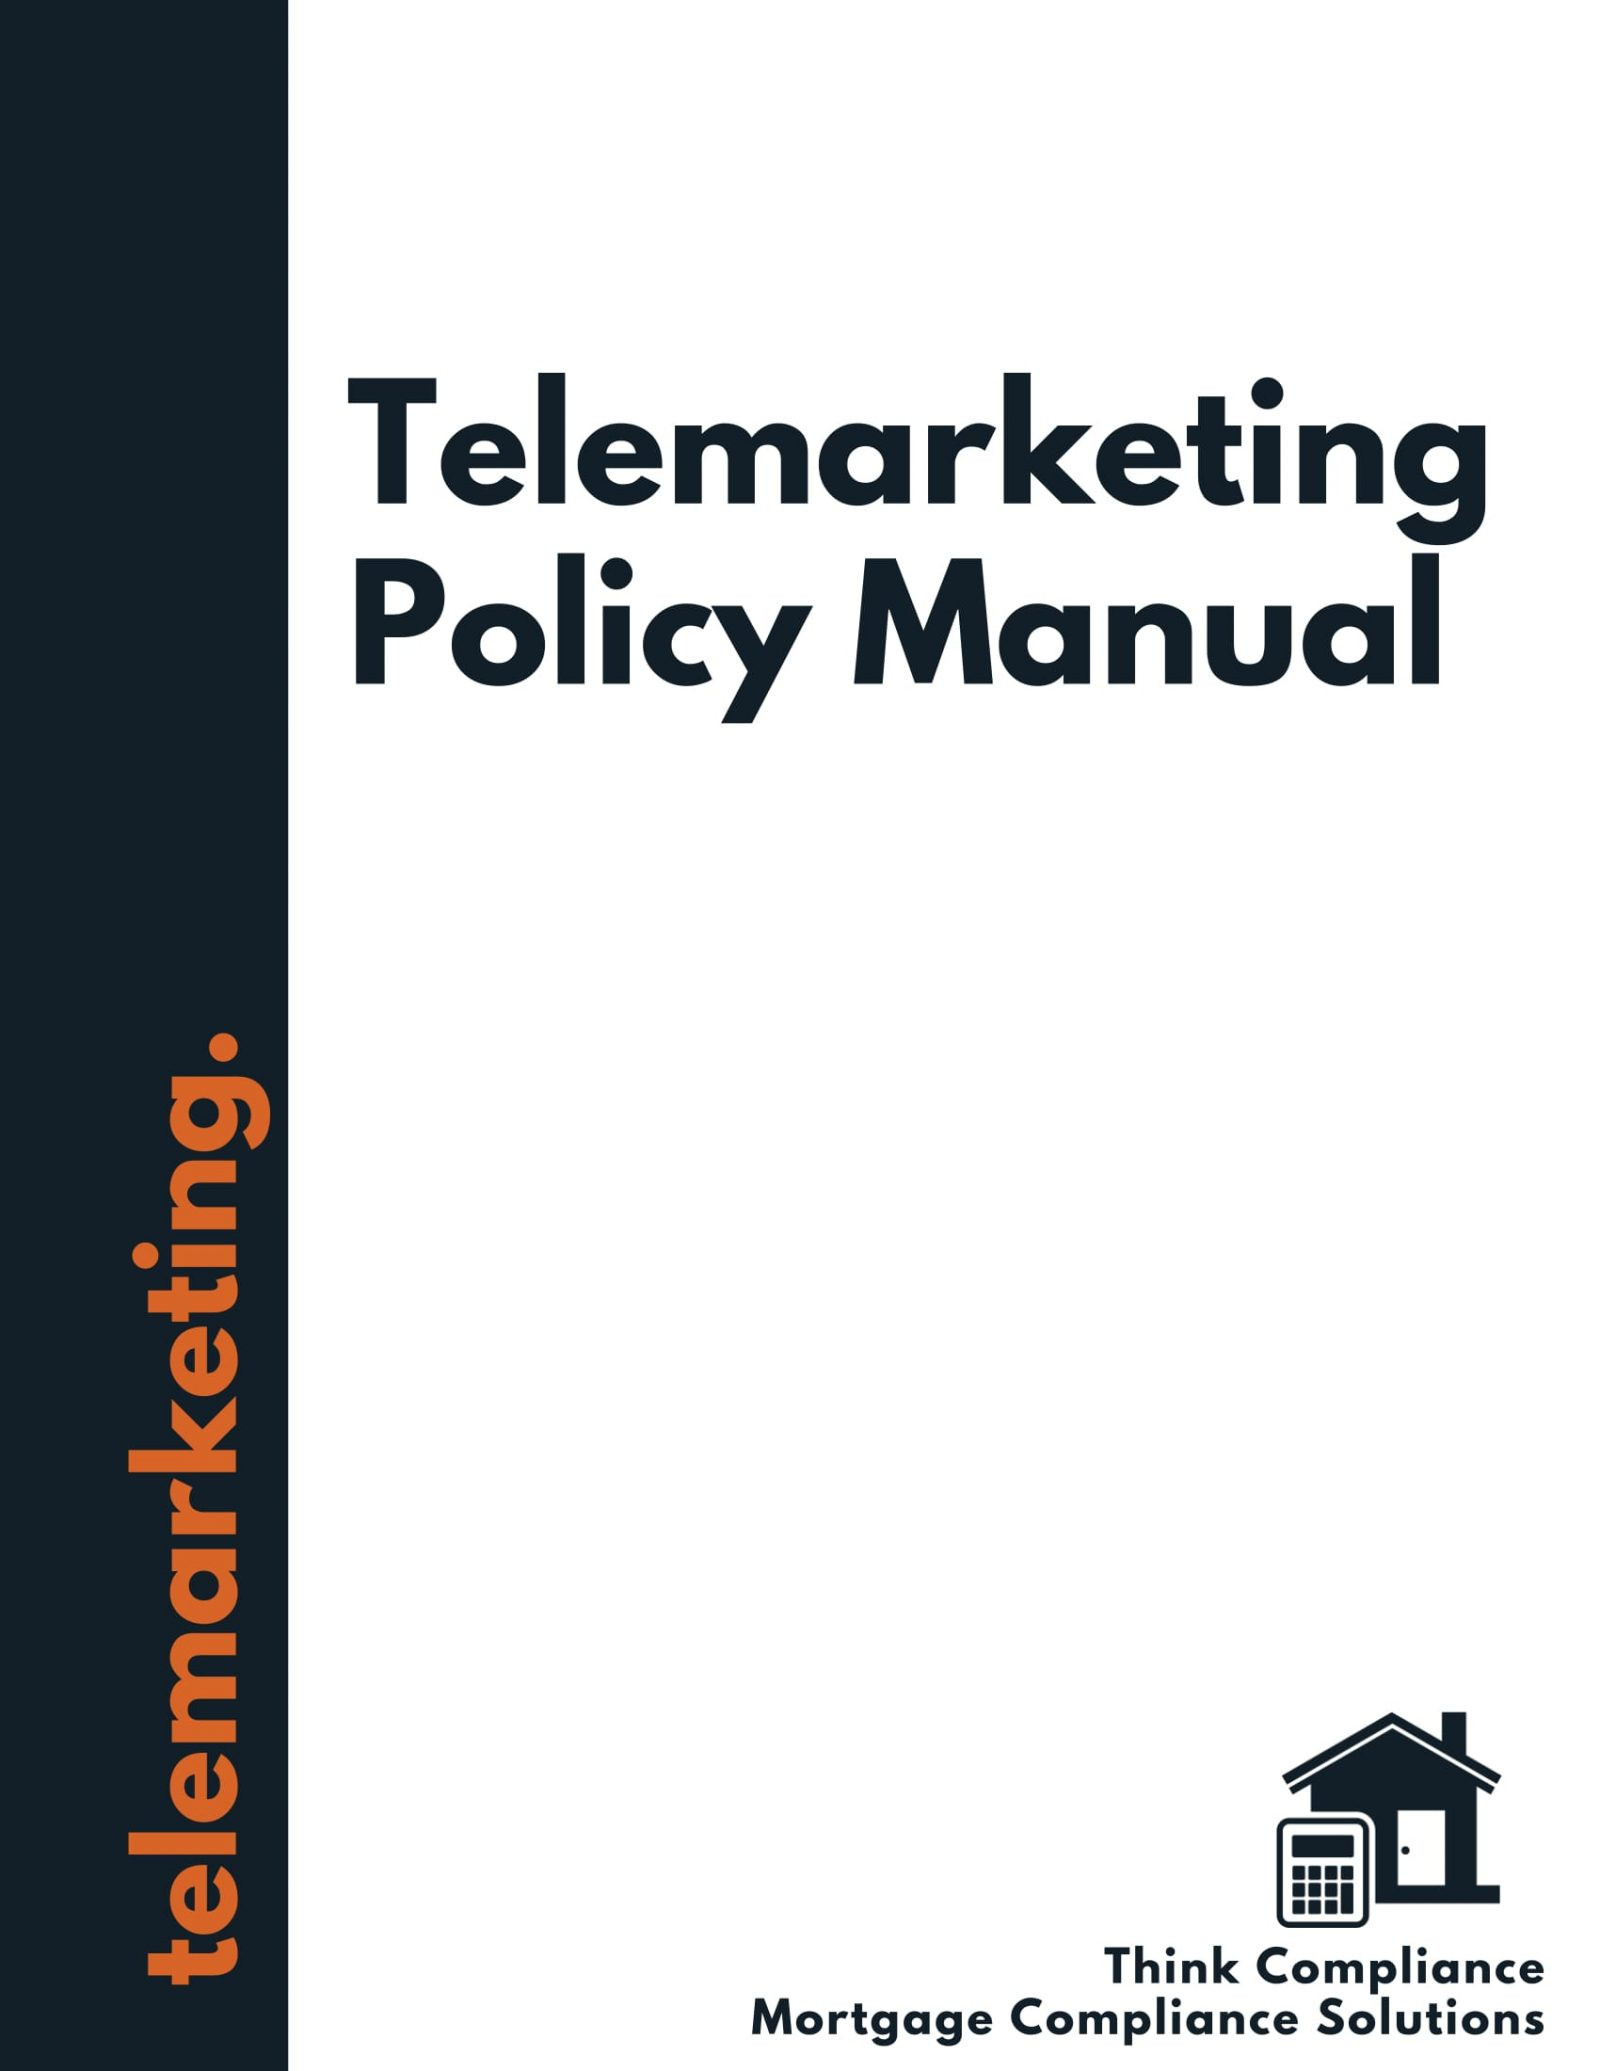 Telemarketing Policy Manual